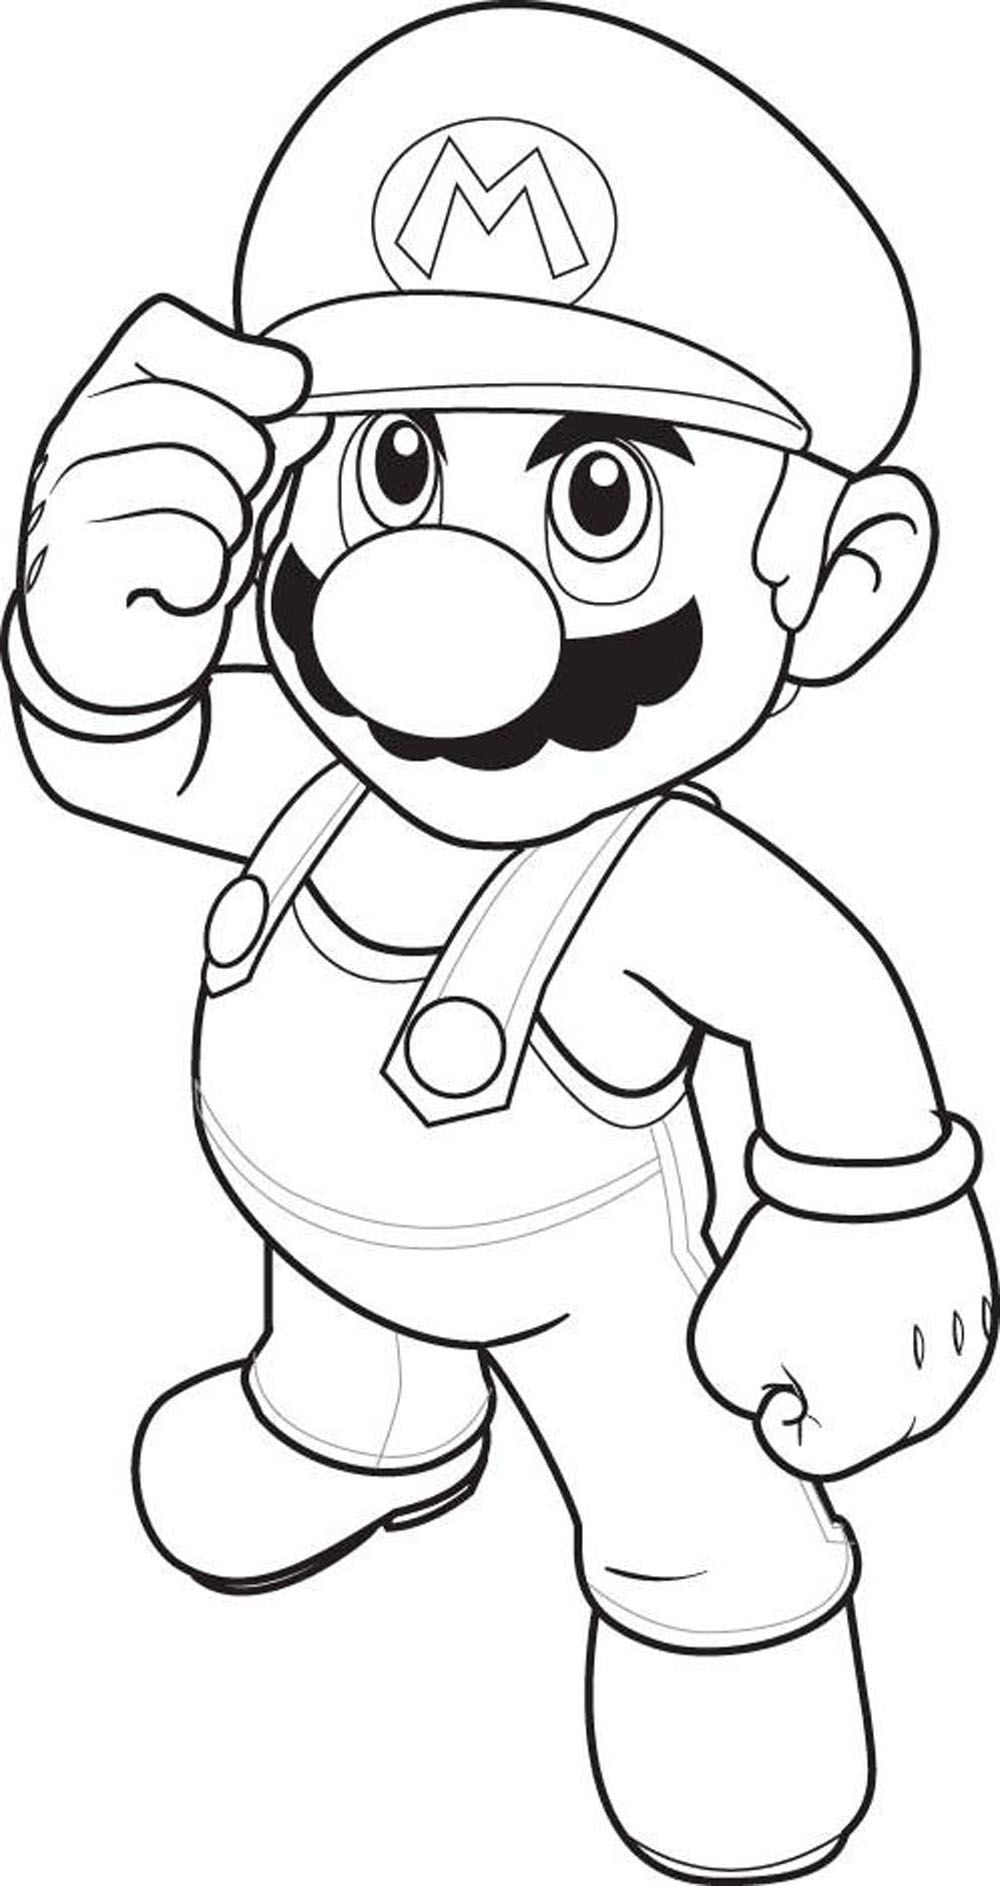 All Mario Character Coloring Pages